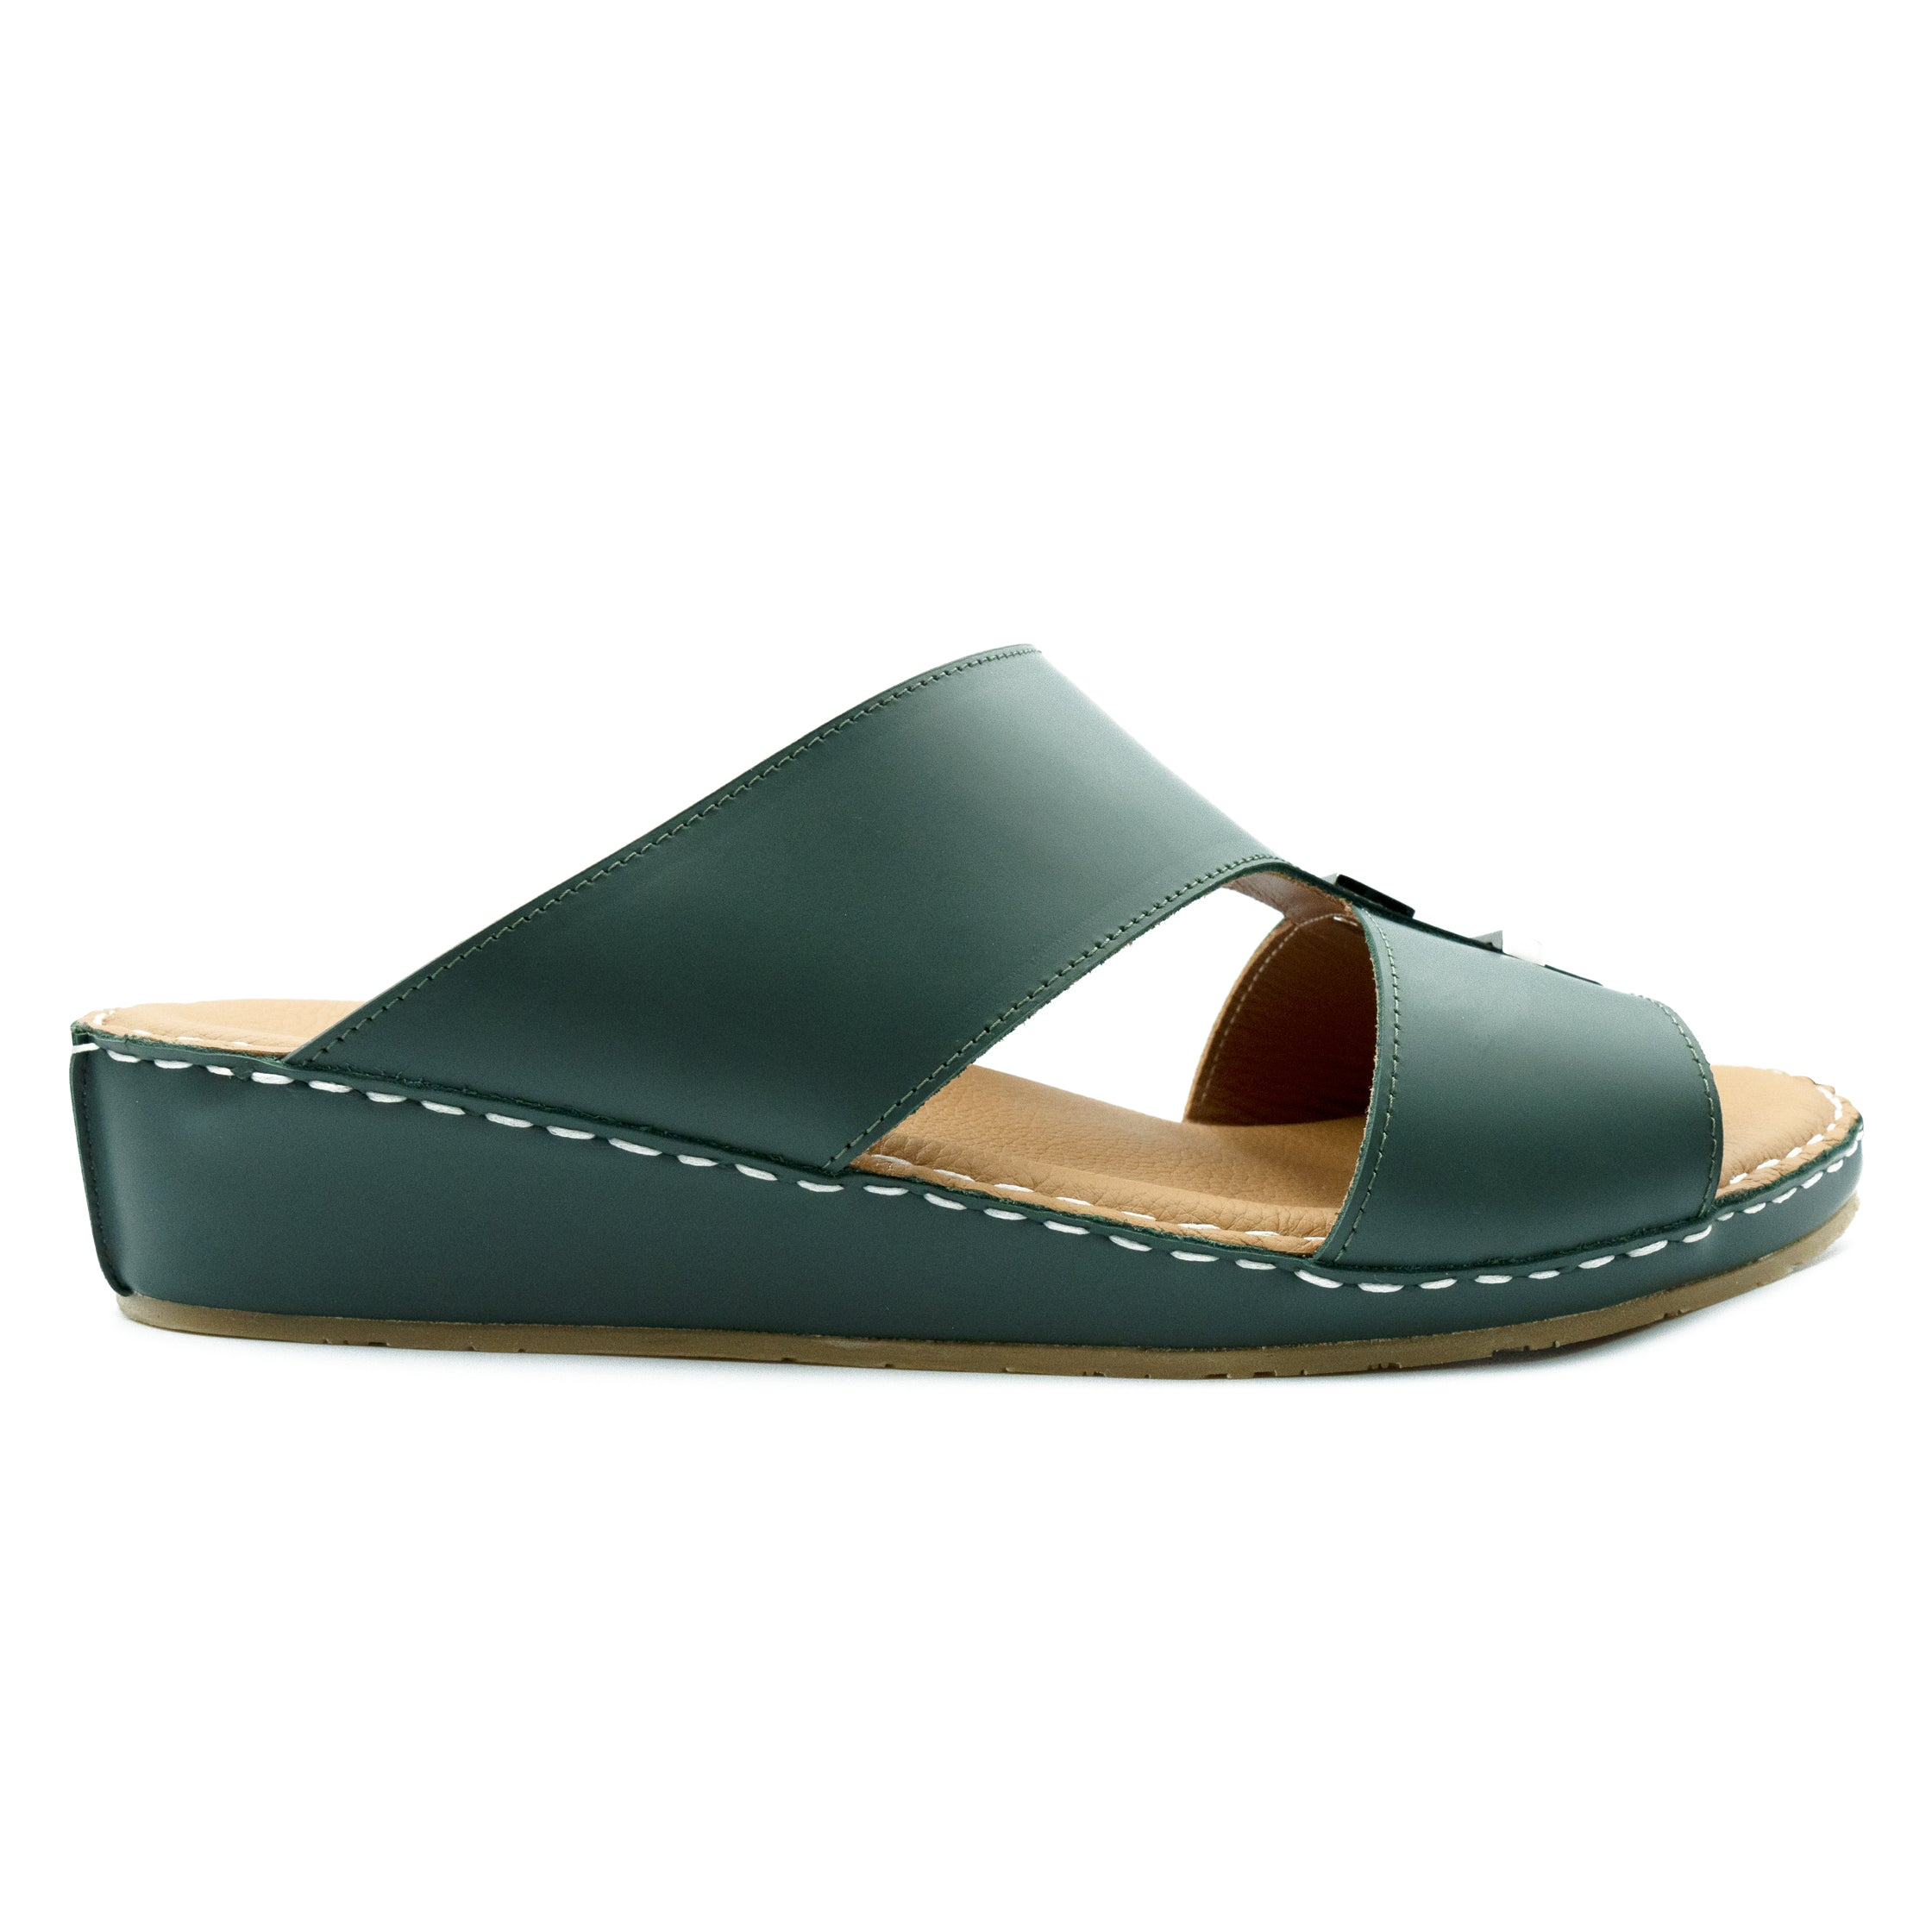 Bottle Green, Oxford, Soft, Matte, Design, Mono-Tone, Arabic, Flat, Sandals, Ramadan Collection, Arabic, Sandals, Accessories